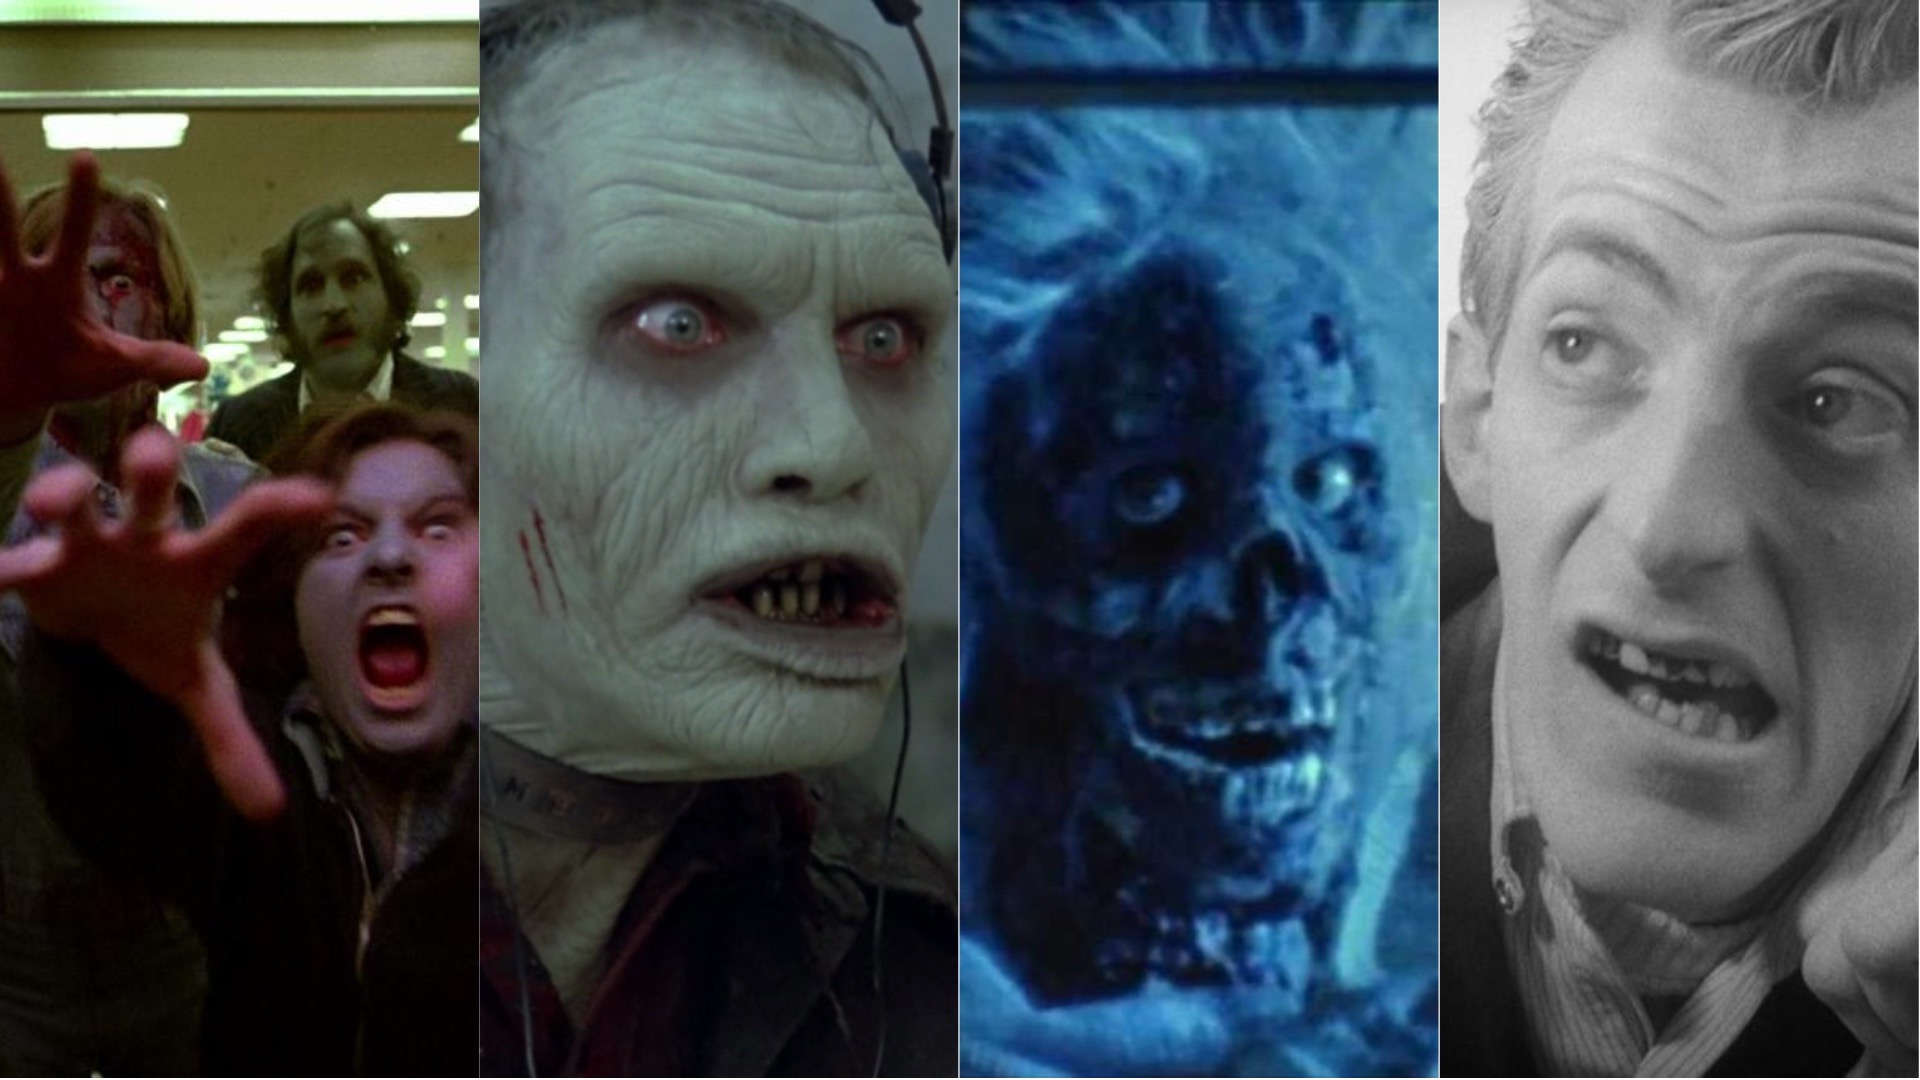 Classic moments from the films of George A. Romero.